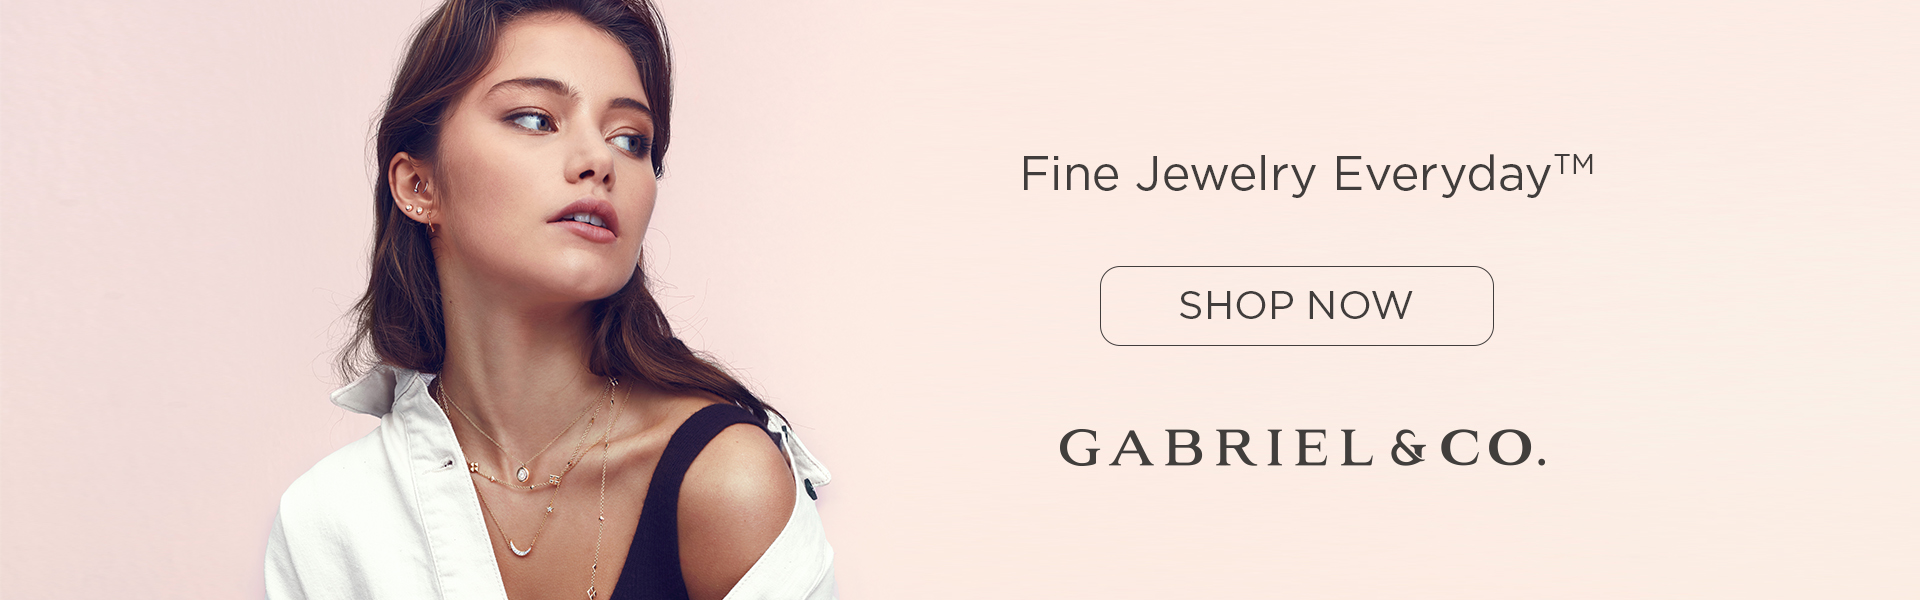 gabriel&co_fashion